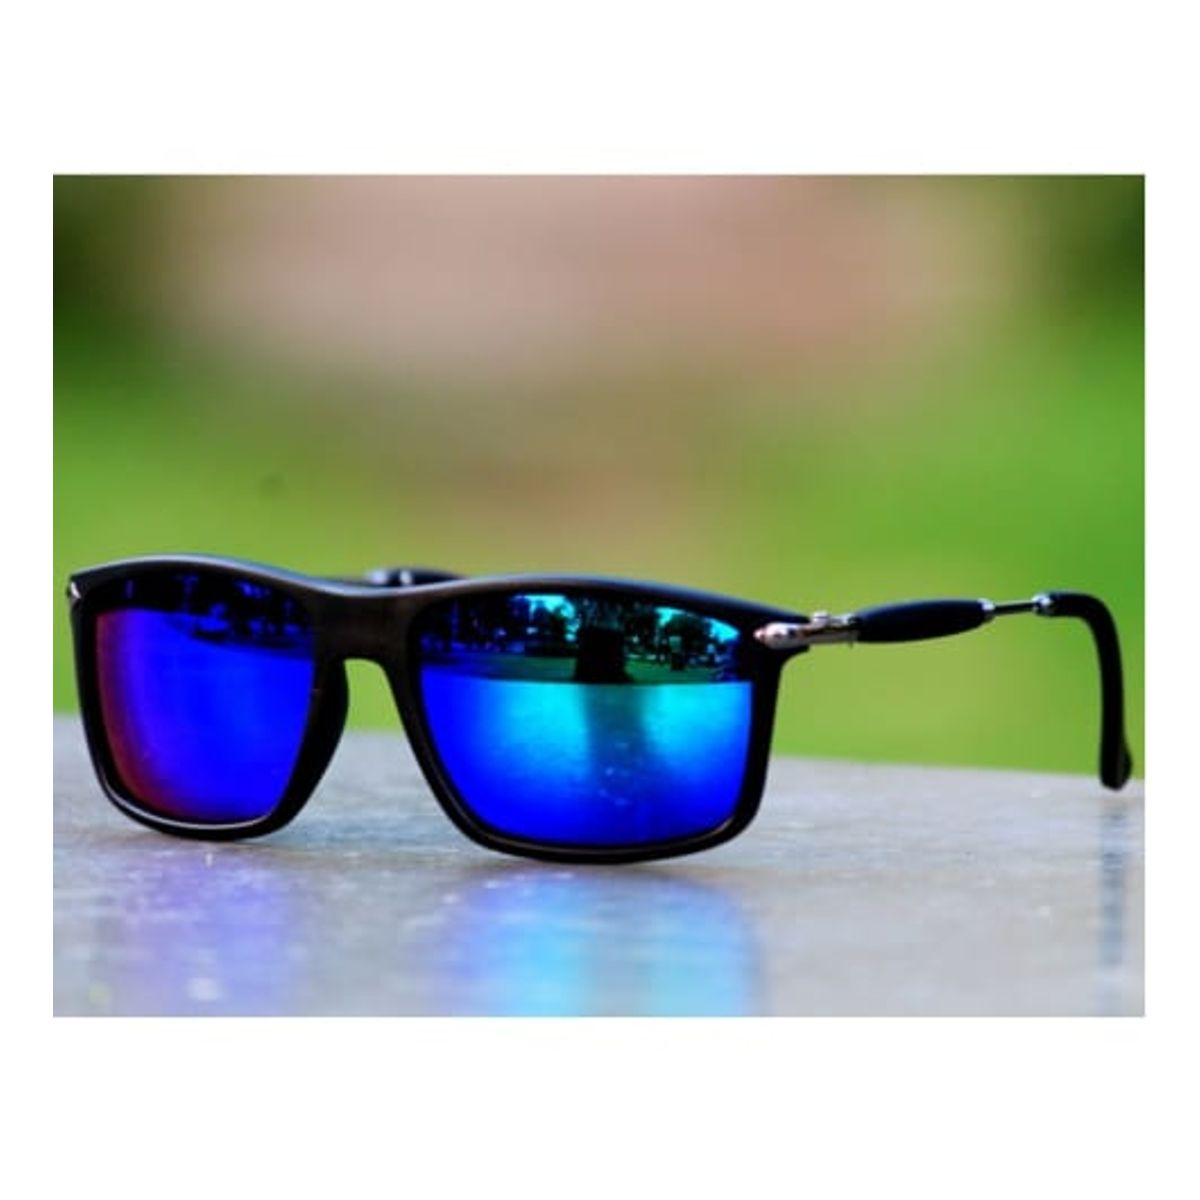 Sunglasses Blue Type Mercury Fancy Square Goggles for Unisex